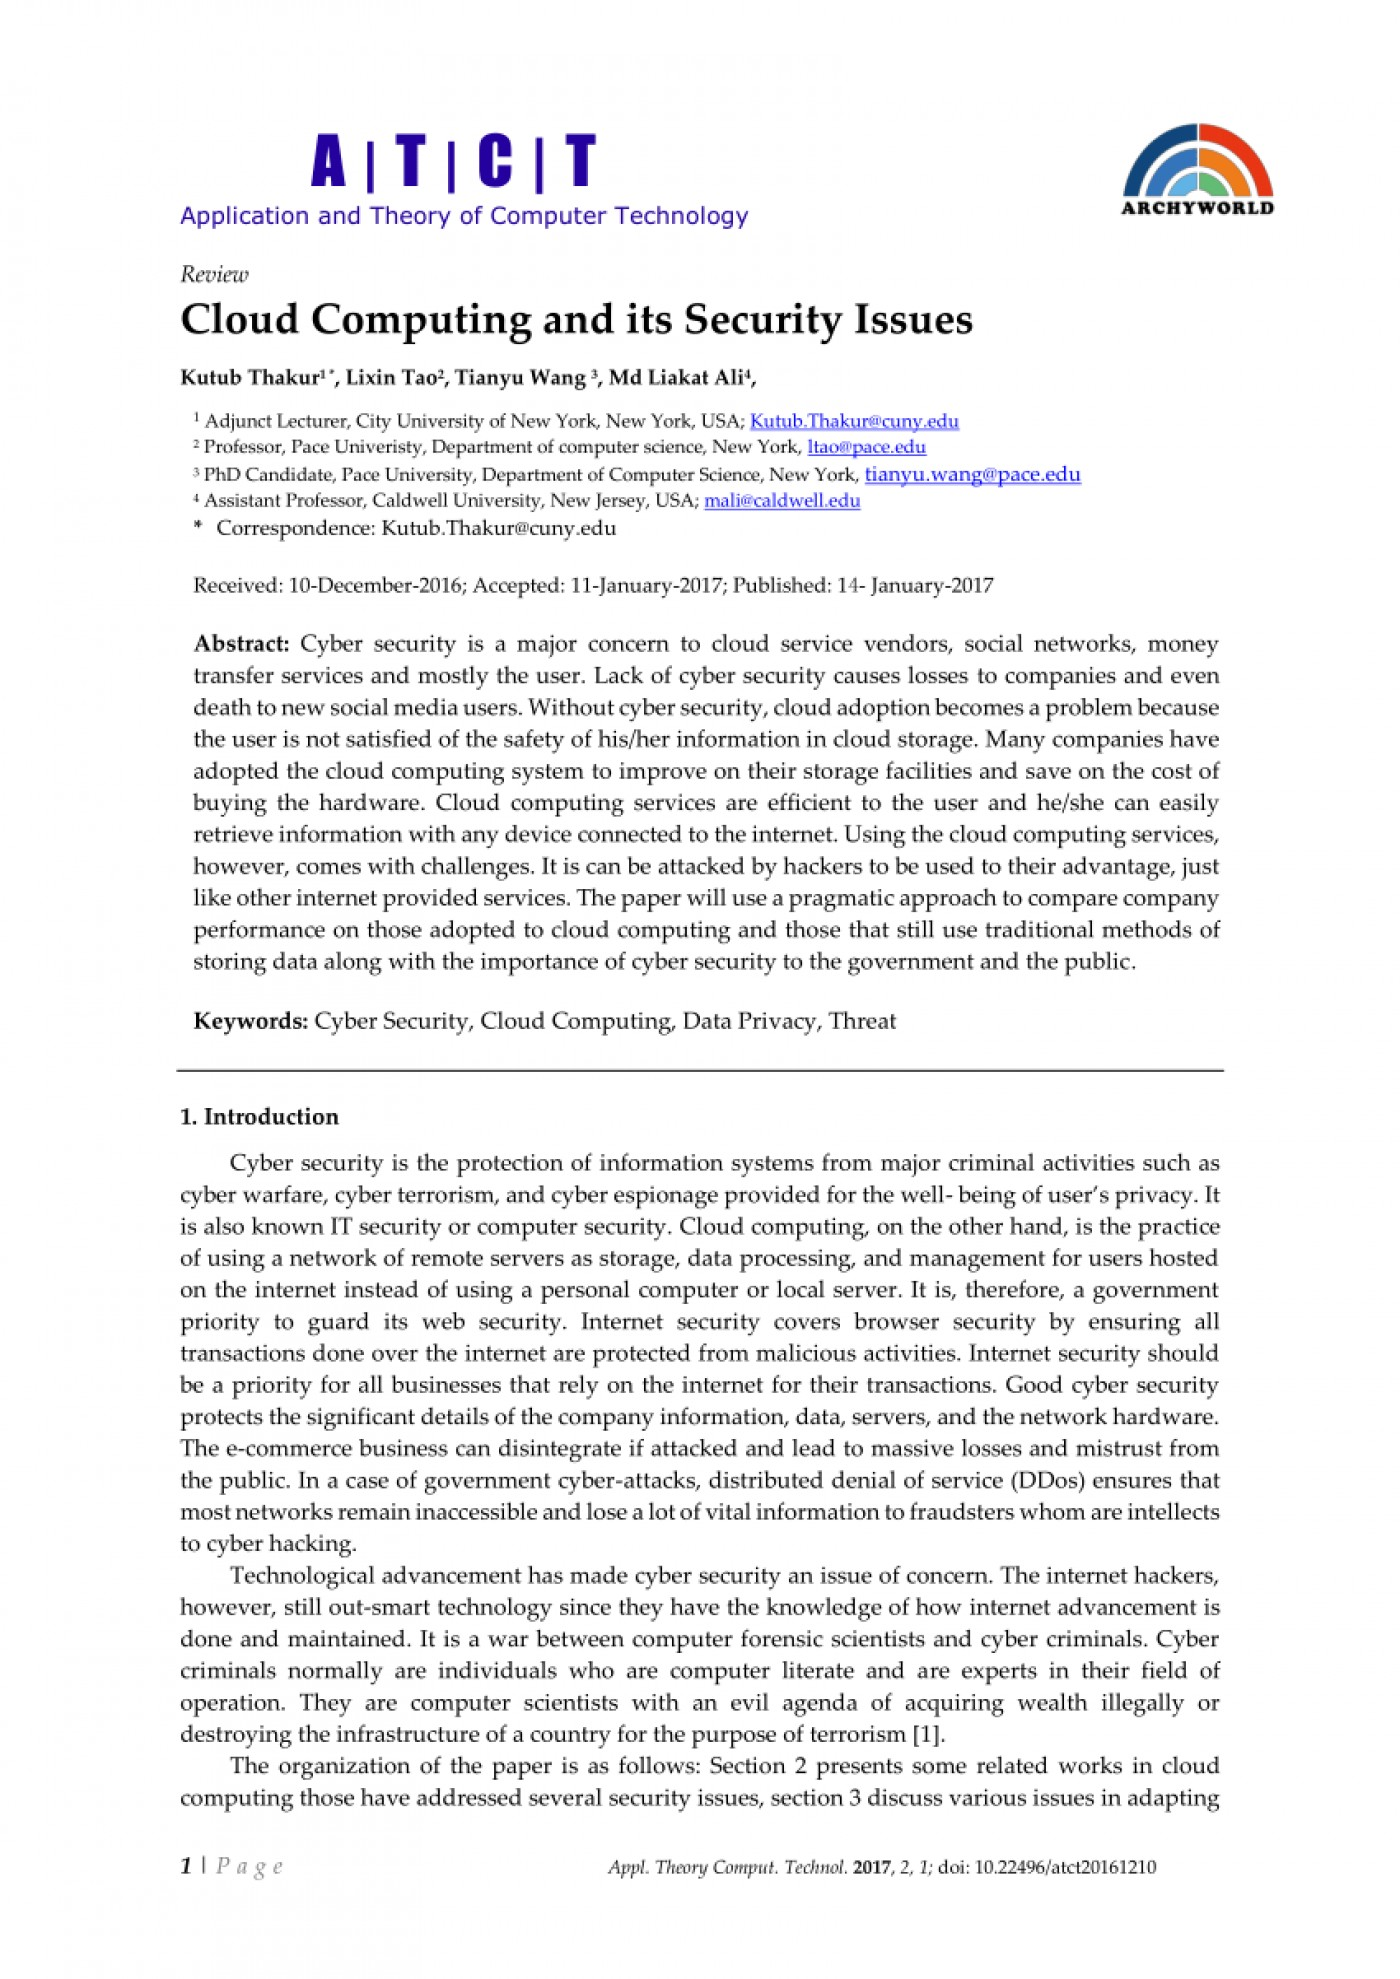 004 Research Paper Cyber Security Pdf Magnificent 2017 1400